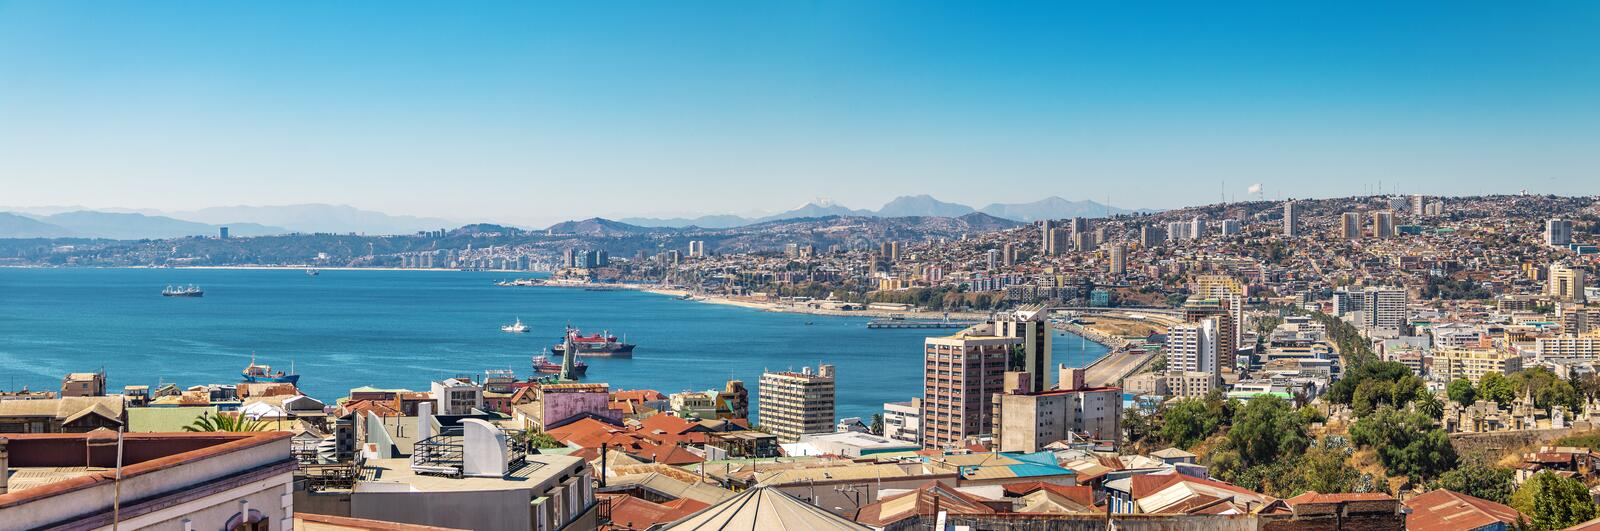 Panoramic aerial view of Valparaiso from Cerro Alegre Hill - Valparaiso, Chile royalty free stock images